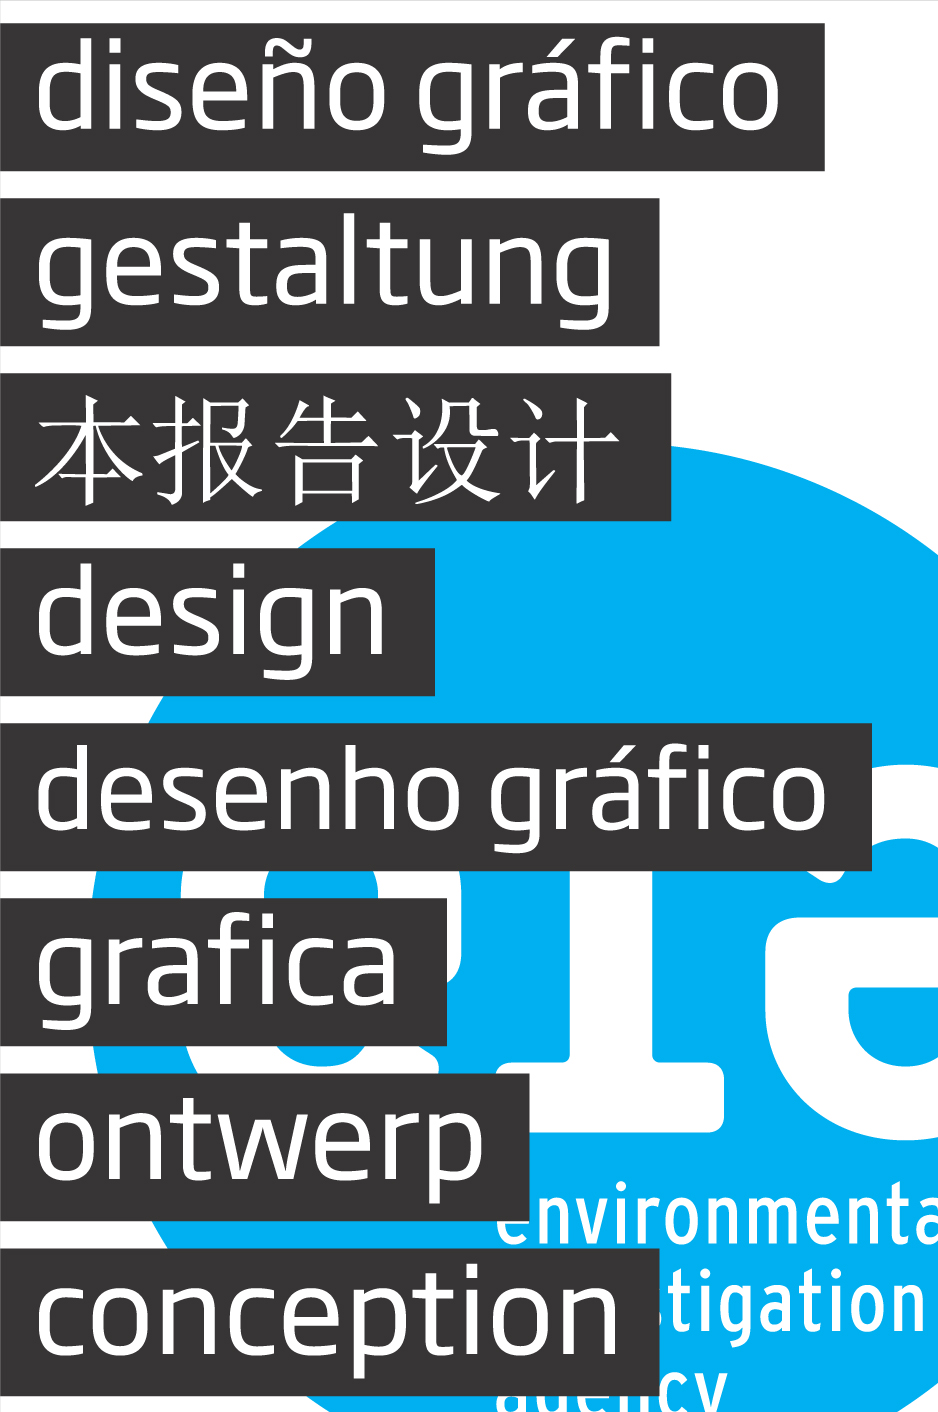 Multilingual design - it's not a foreign language...